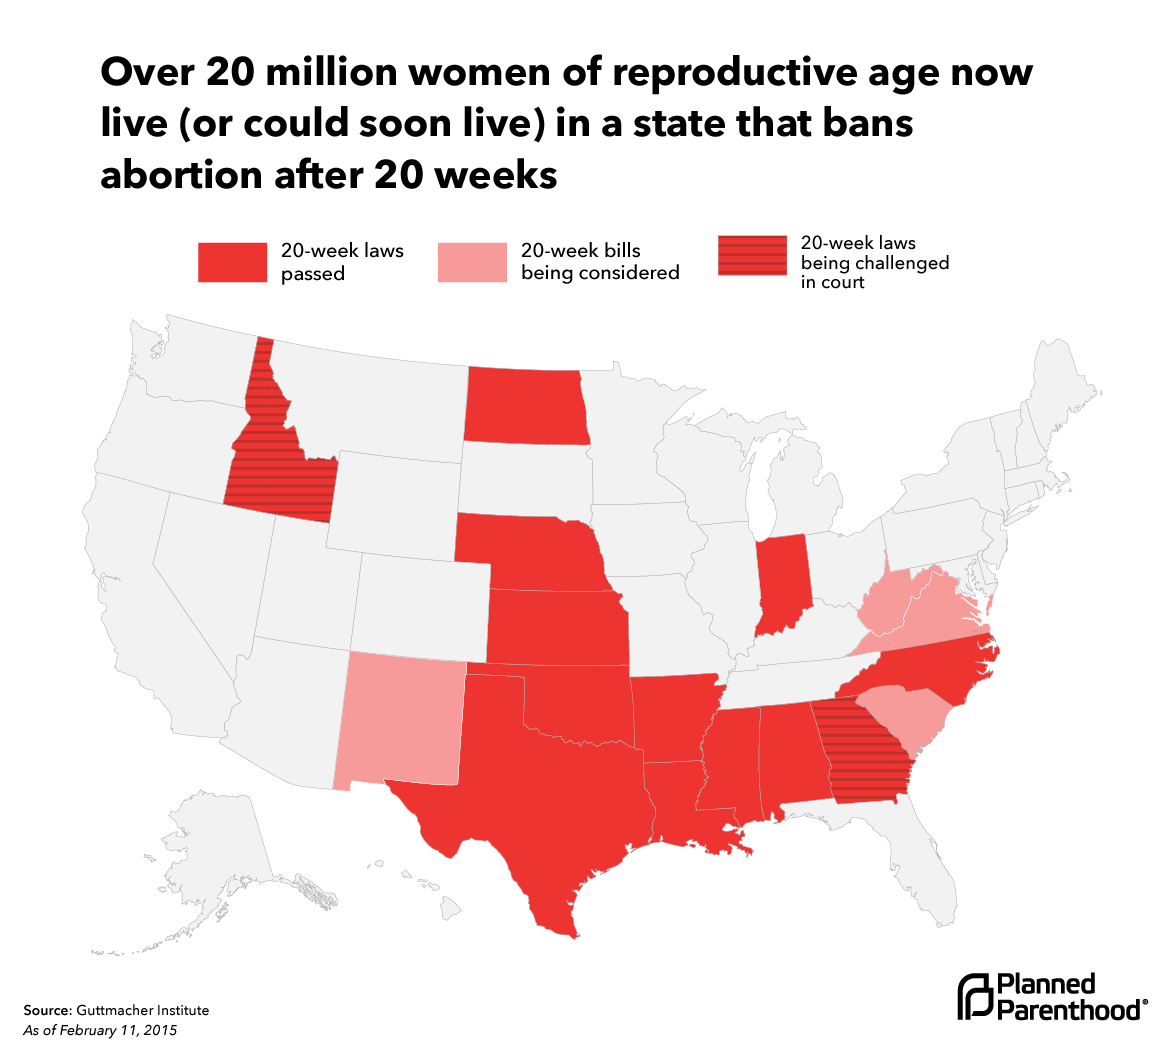 20150211-20-Week-Abortion-Map-580x525-2x.png